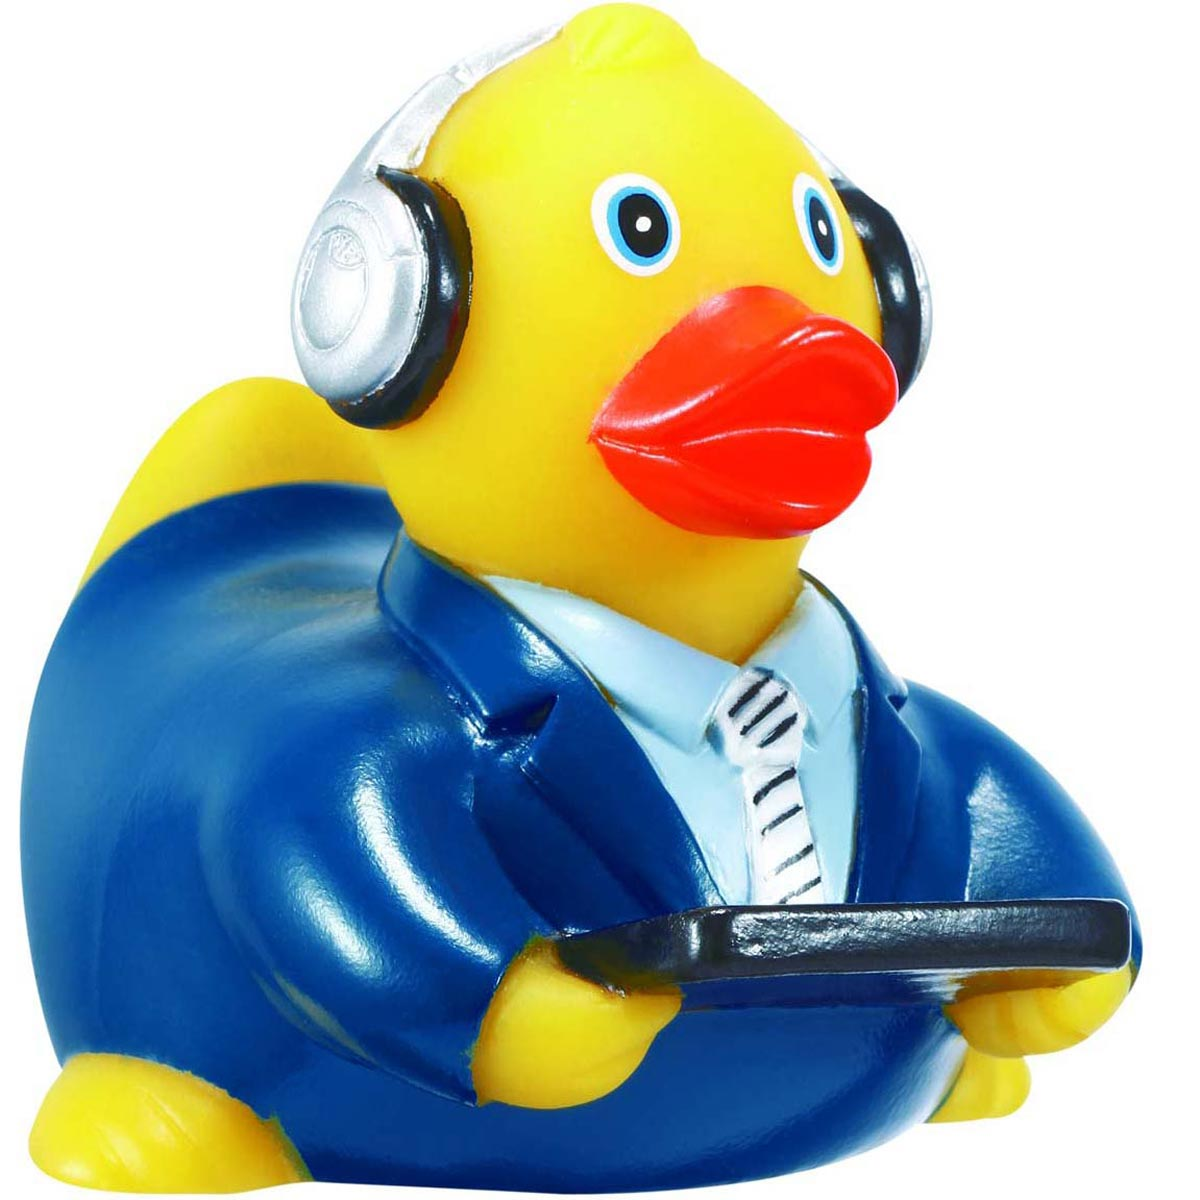 Rubber Broadcaster Duck Toy